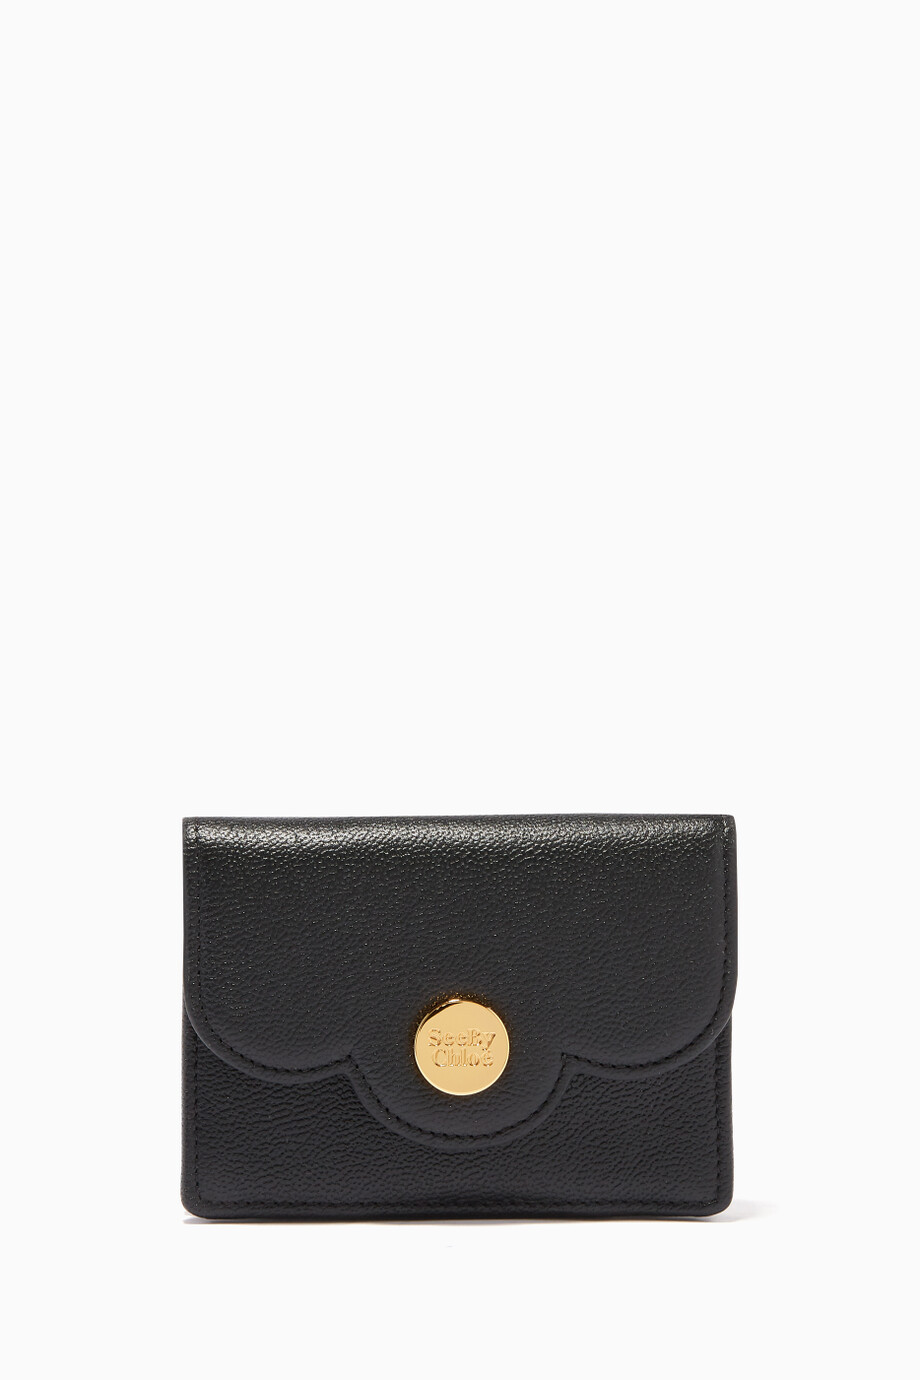 a3836d55 Shop See By Chloé Black Polina Small Scalloped-Edge Wallet for Women ...